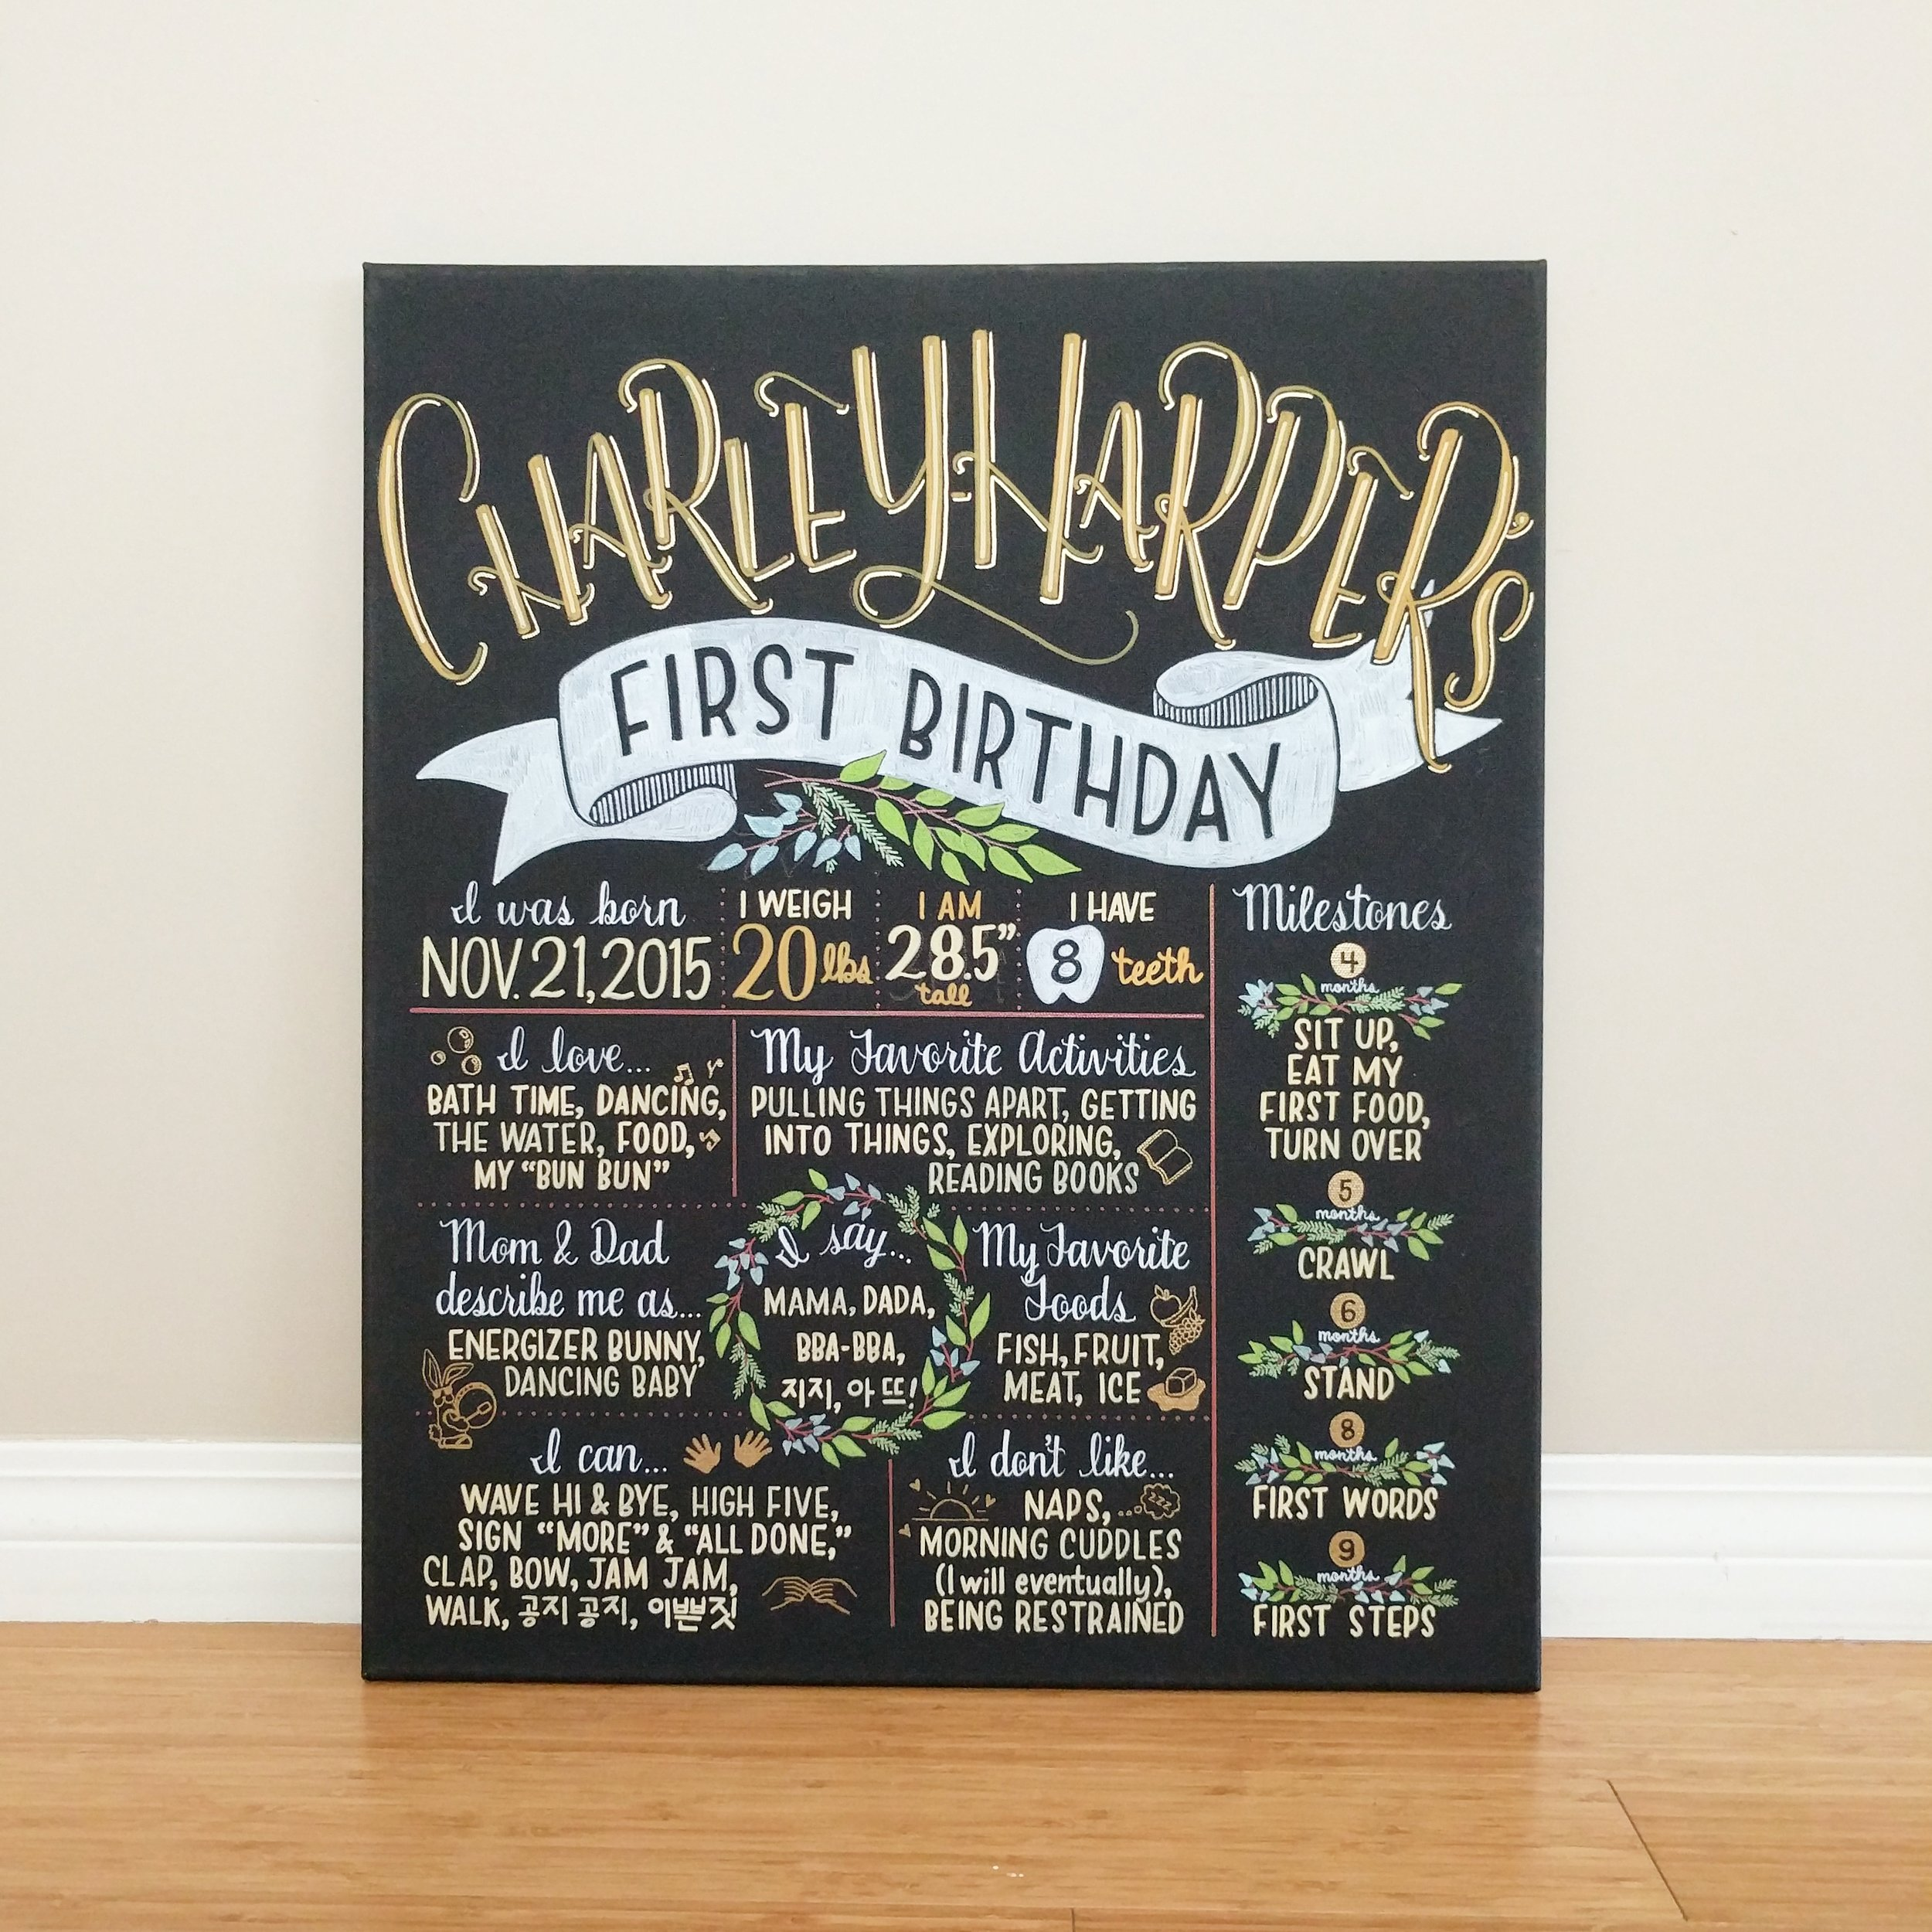 Charley-Harper's First Birthday Board.jpg